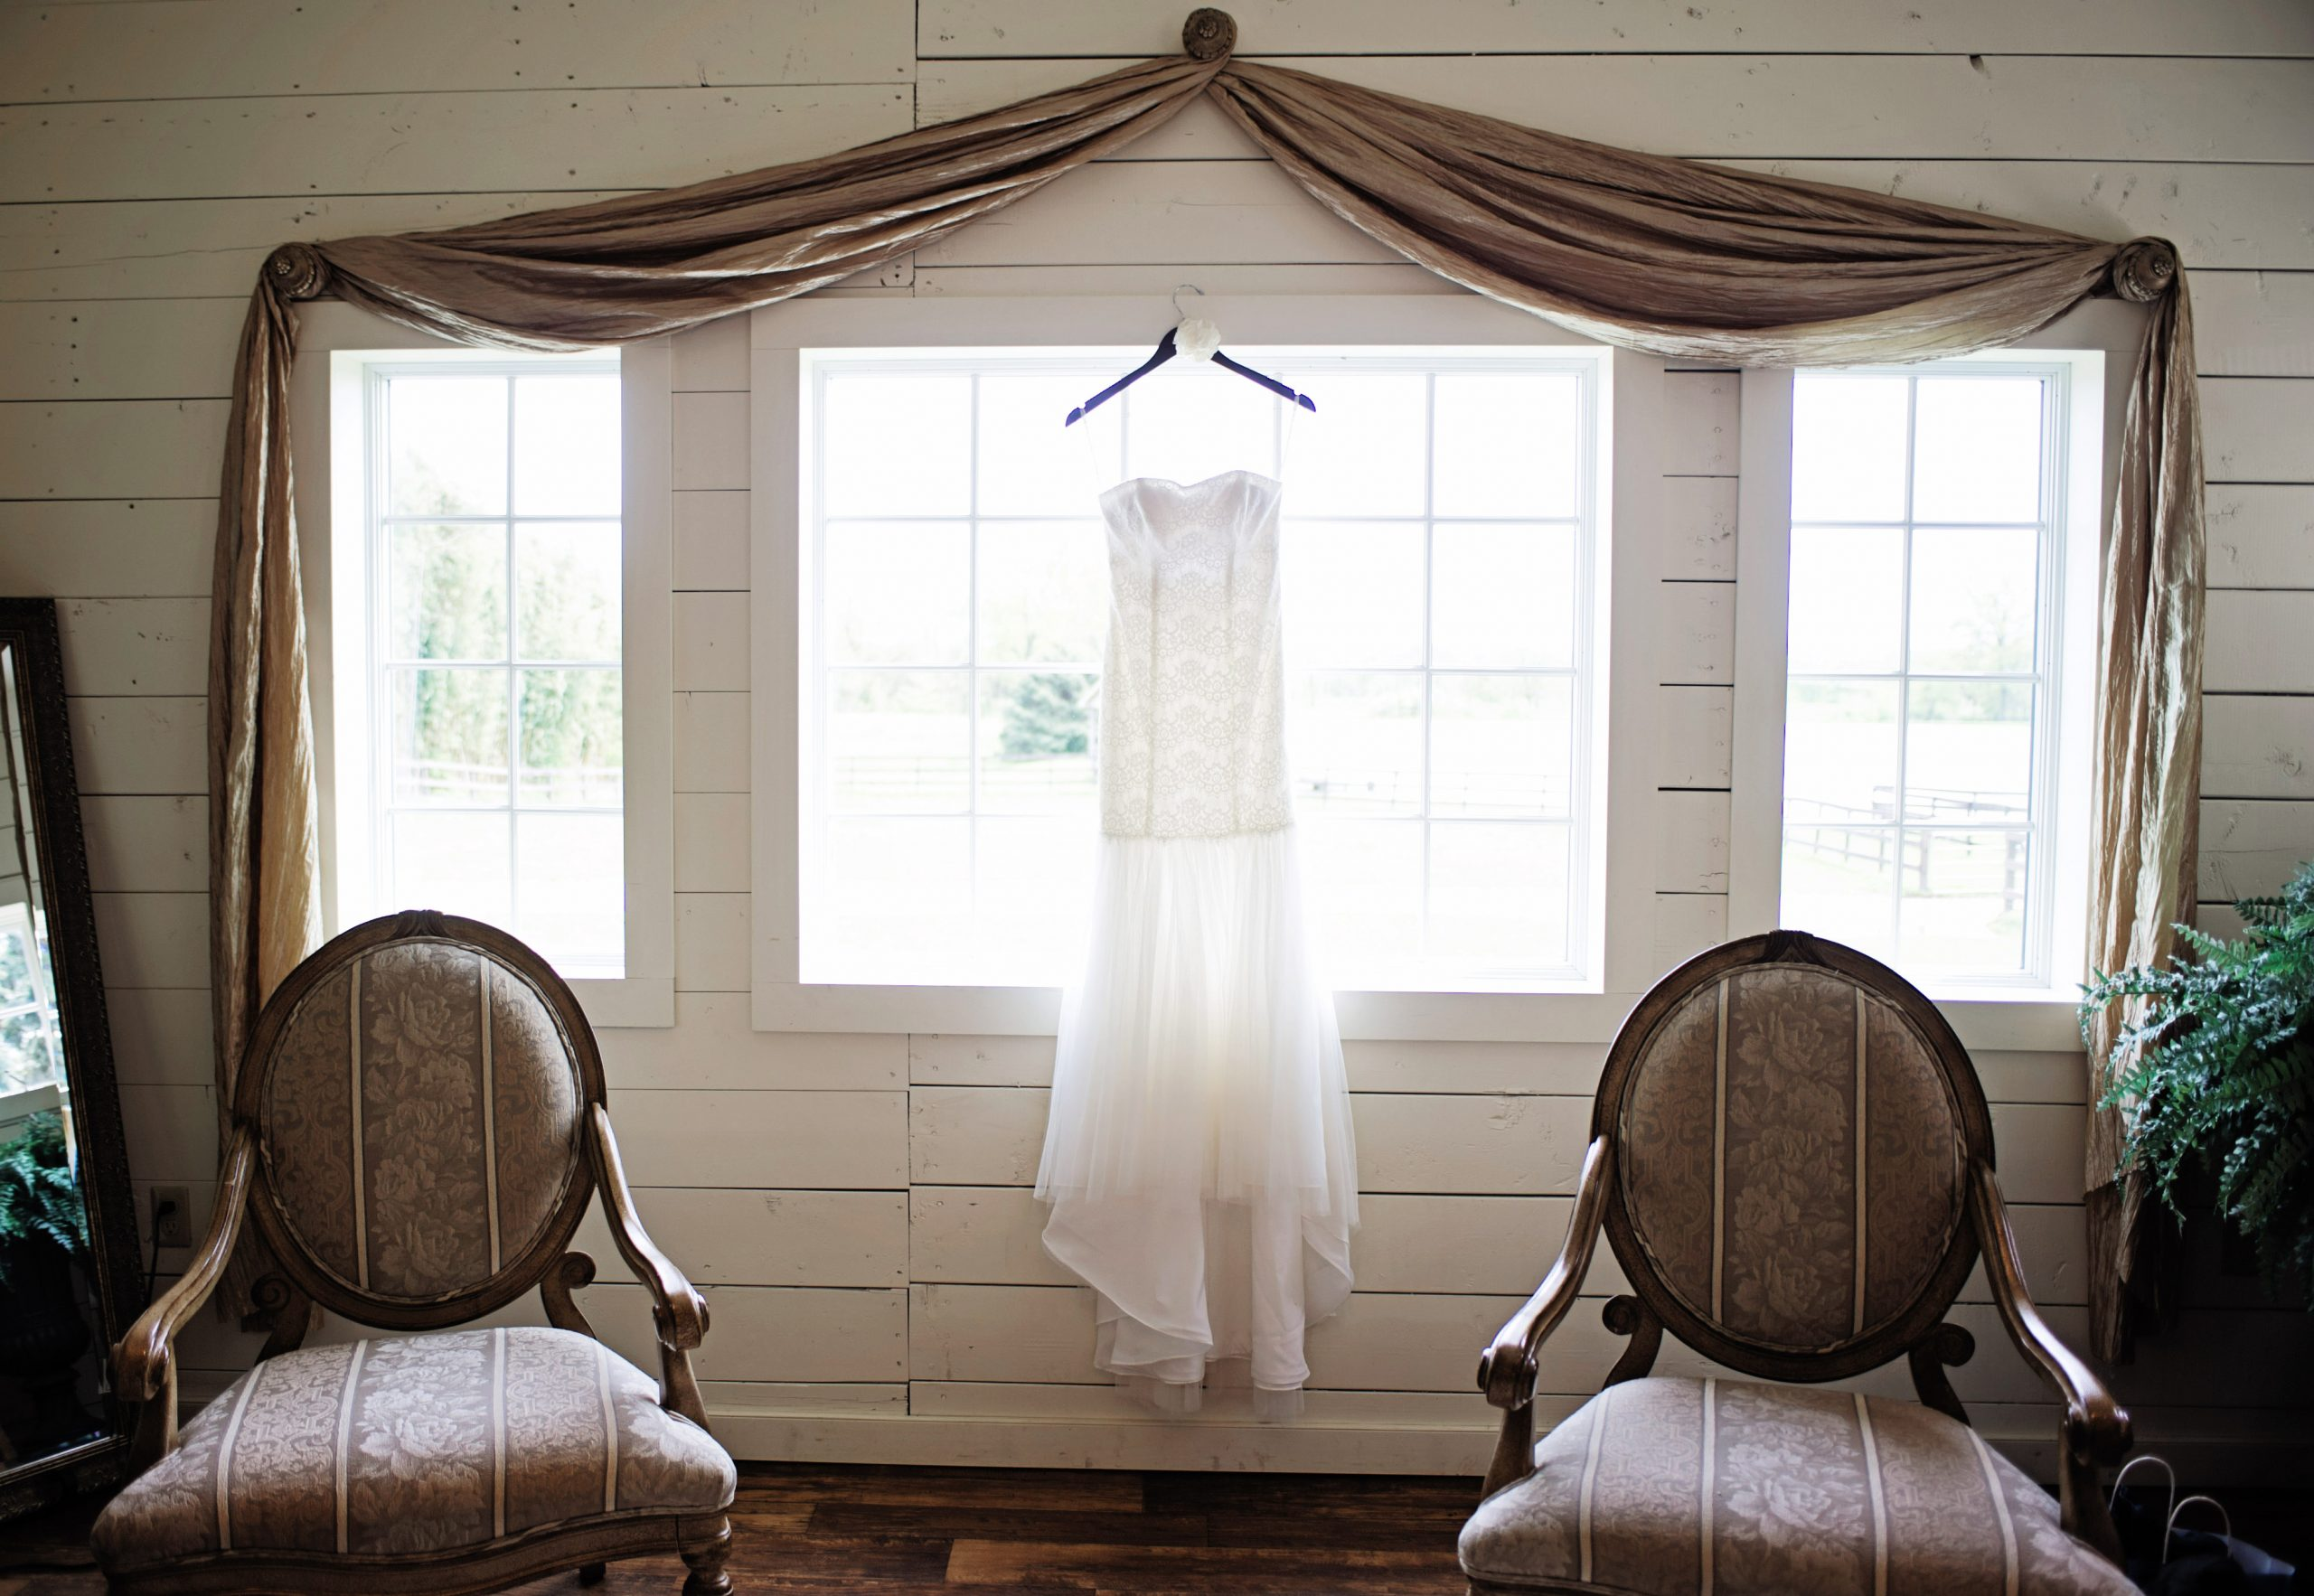 A wedding dress represents the bride. Lovefusion Photography angelically photographs Kady's dress she is to wear down the isle at Lakeview Farms of York, PA. Featured in Dream Weddings.